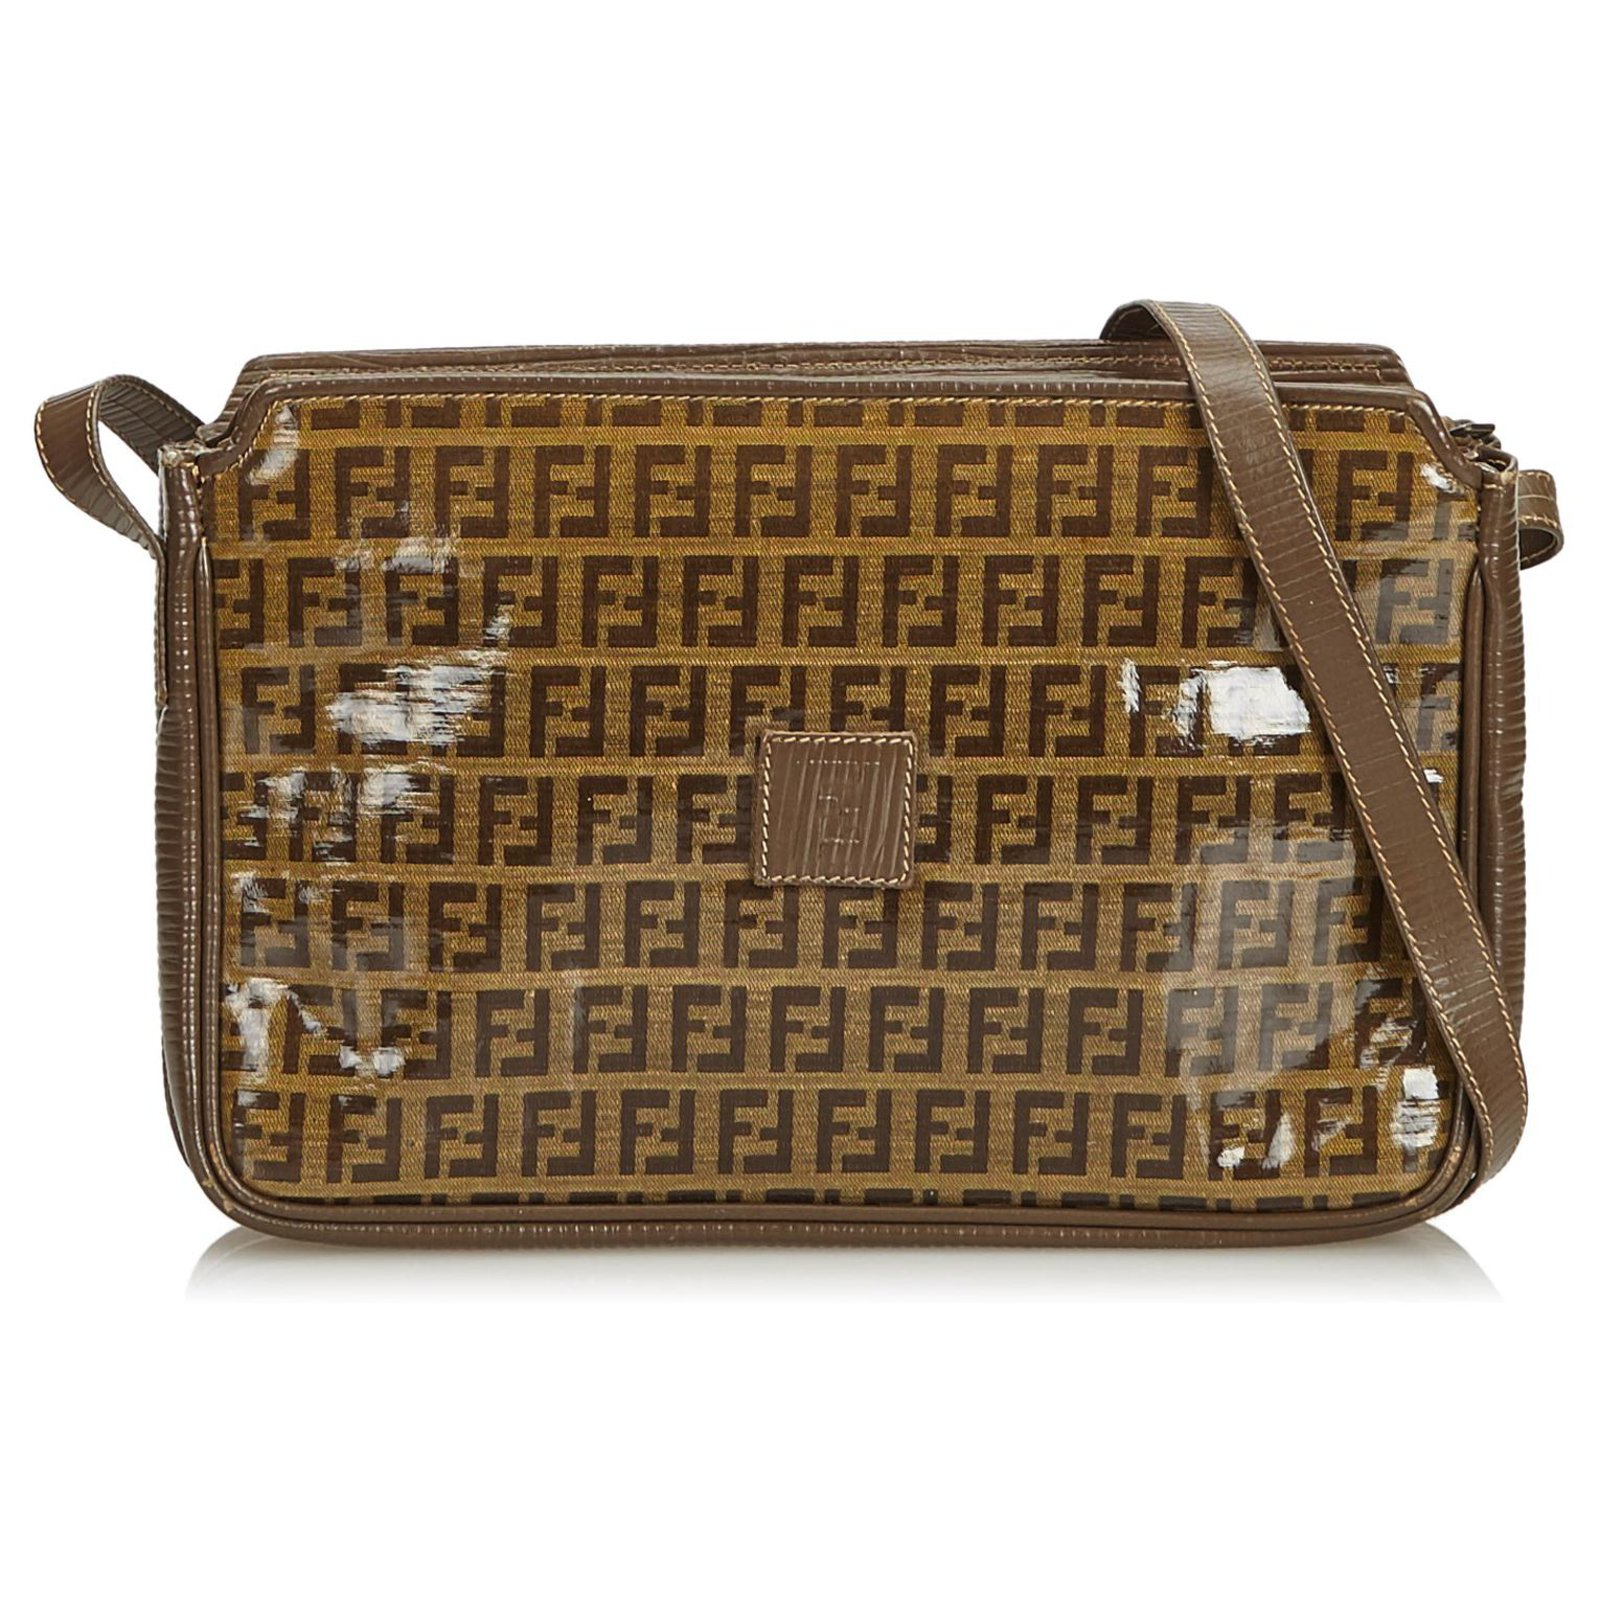 9639716e72 Fendi Fendi Brown Zucchino Coated Canvas Crossbody Bag Handbags Leather ,Other,Cloth,Cloth